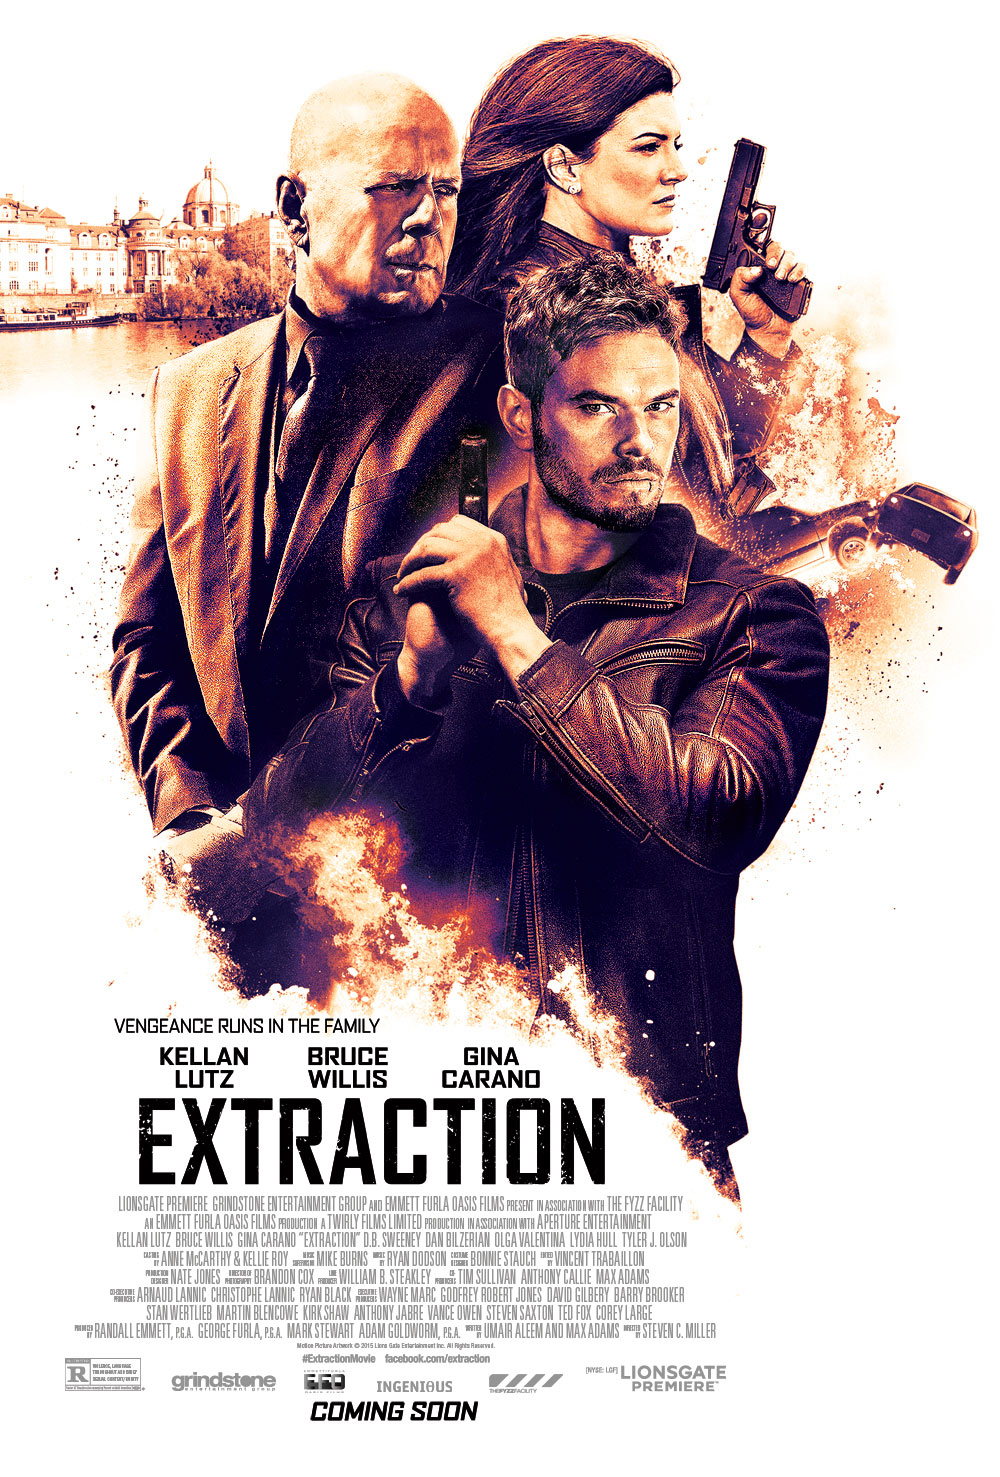 extraction-film-poster-movie-images-kellan-lutz-bruce-willis-gina-carano